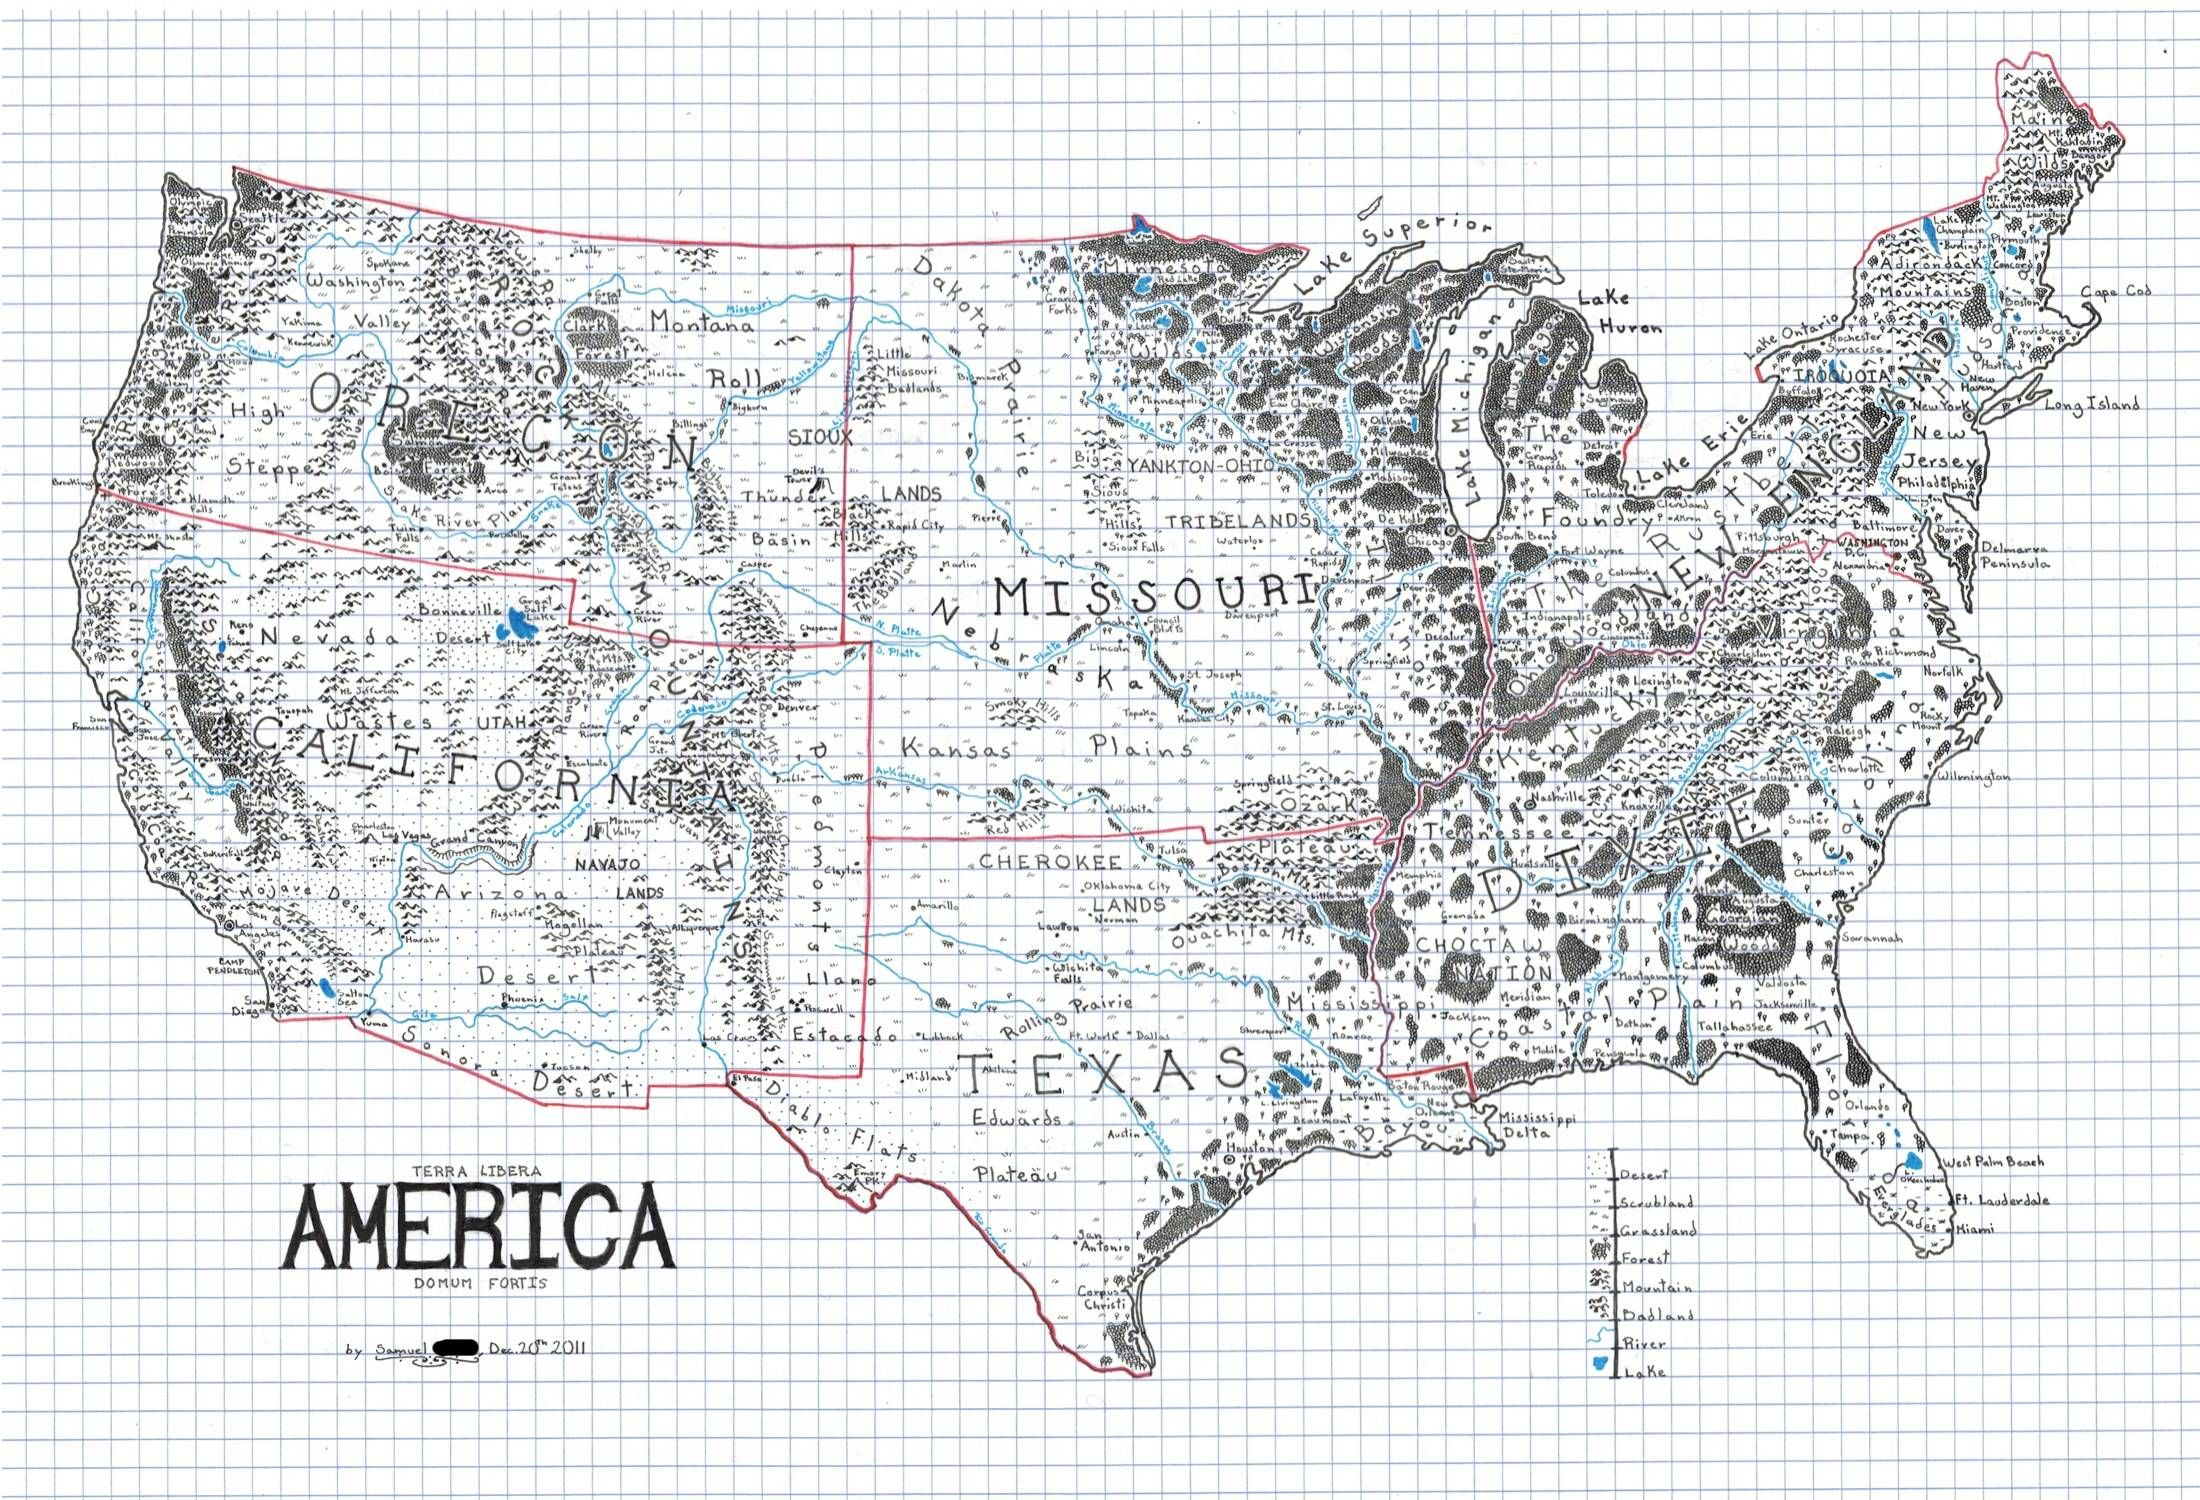 Hand Drawn Us Map.Hand Drawn Map Of A Fantasy America 2200x1500 X Post R